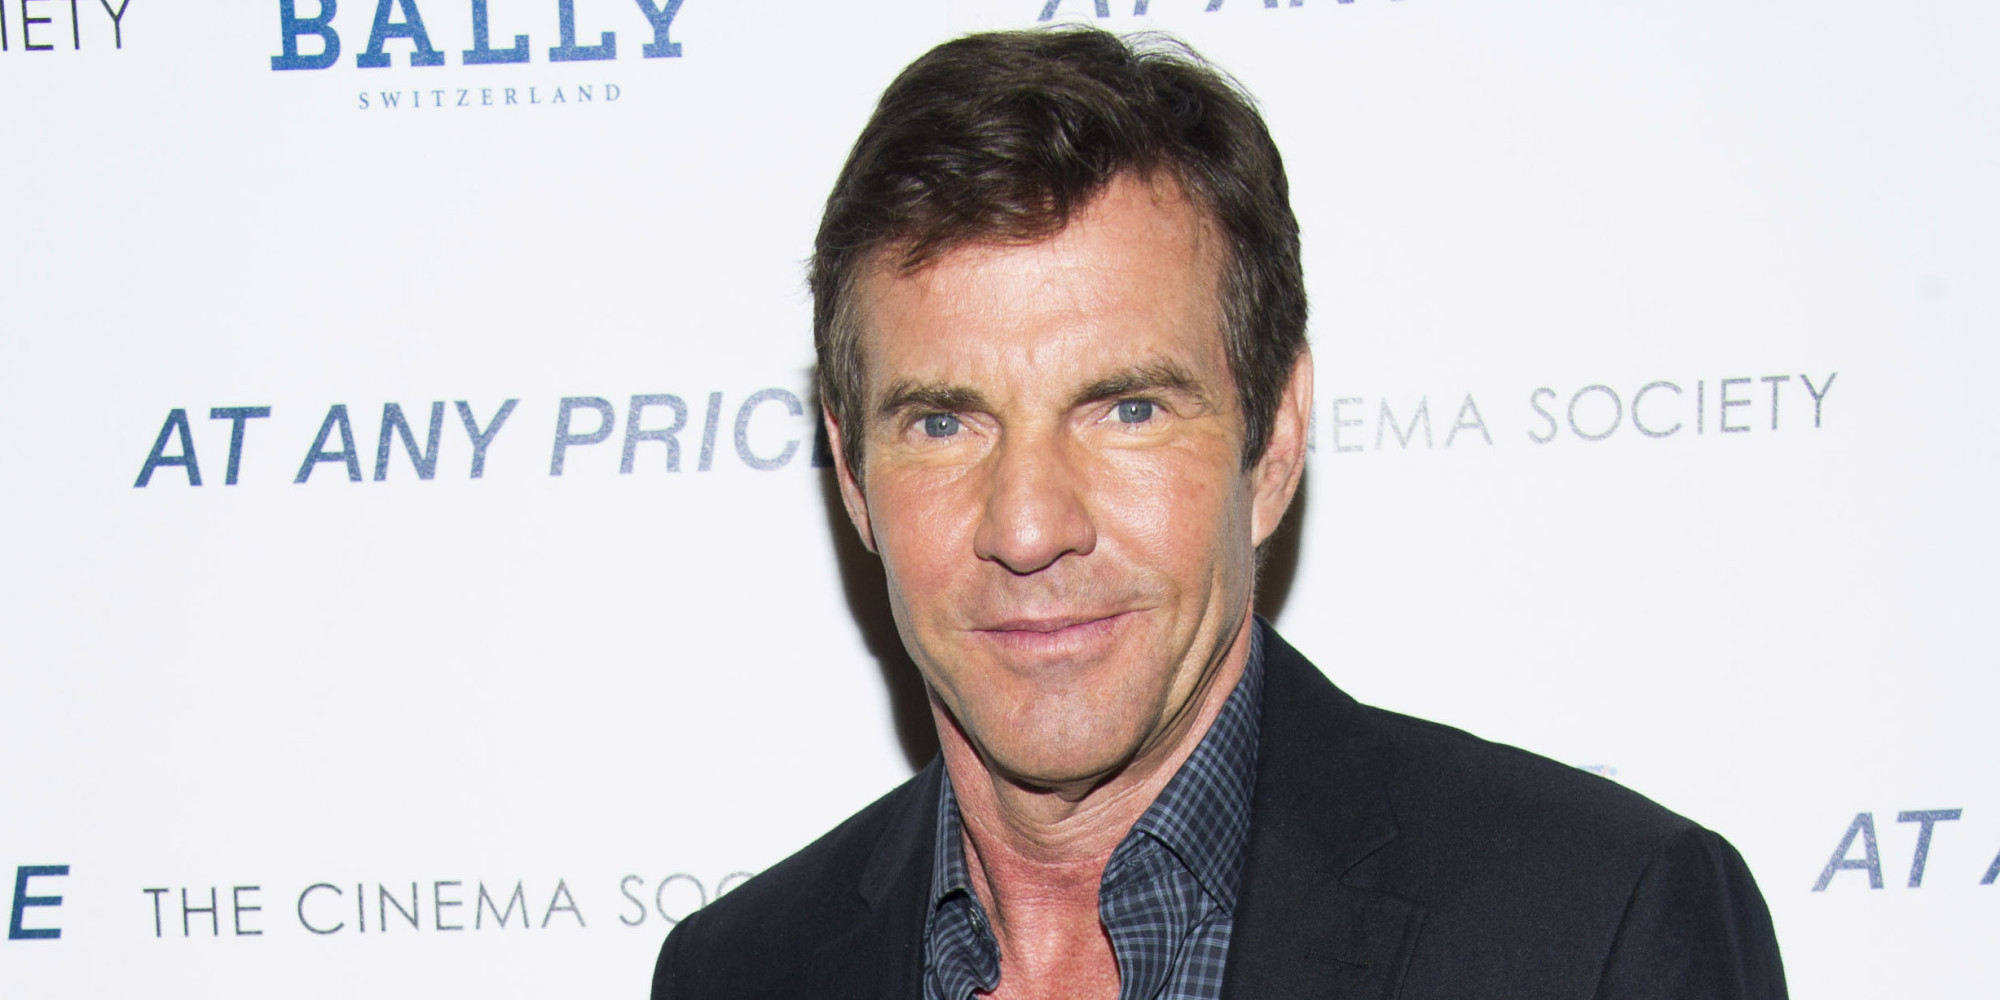 Dennis Quaid Hd Wallpaper